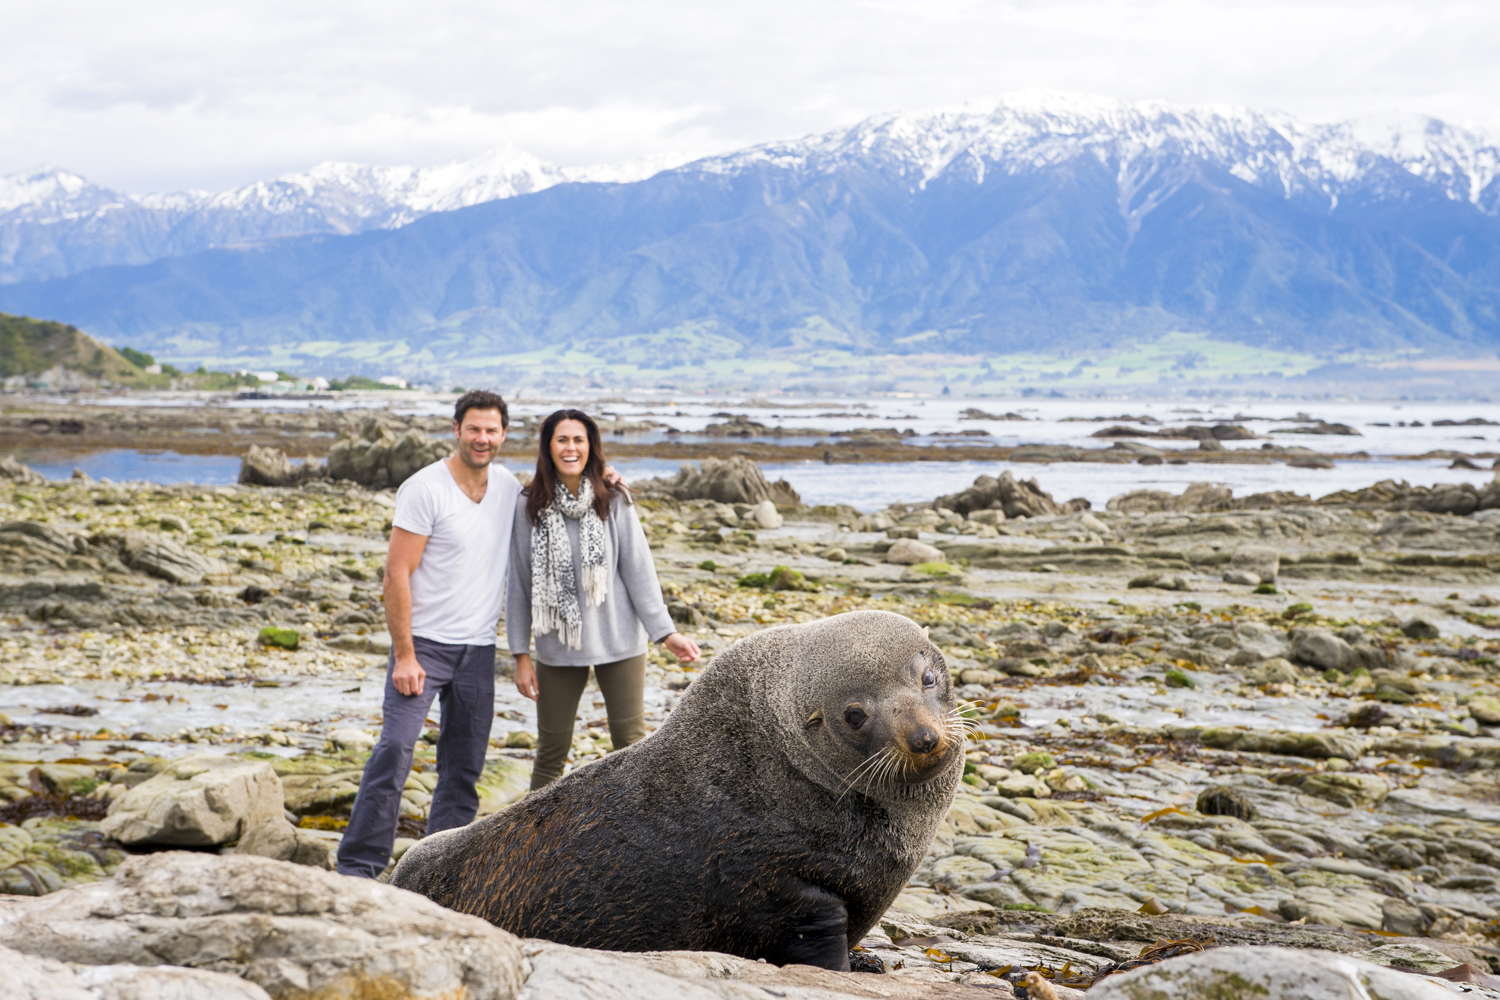 There maybe more fur seals then residents in Kaikoura.